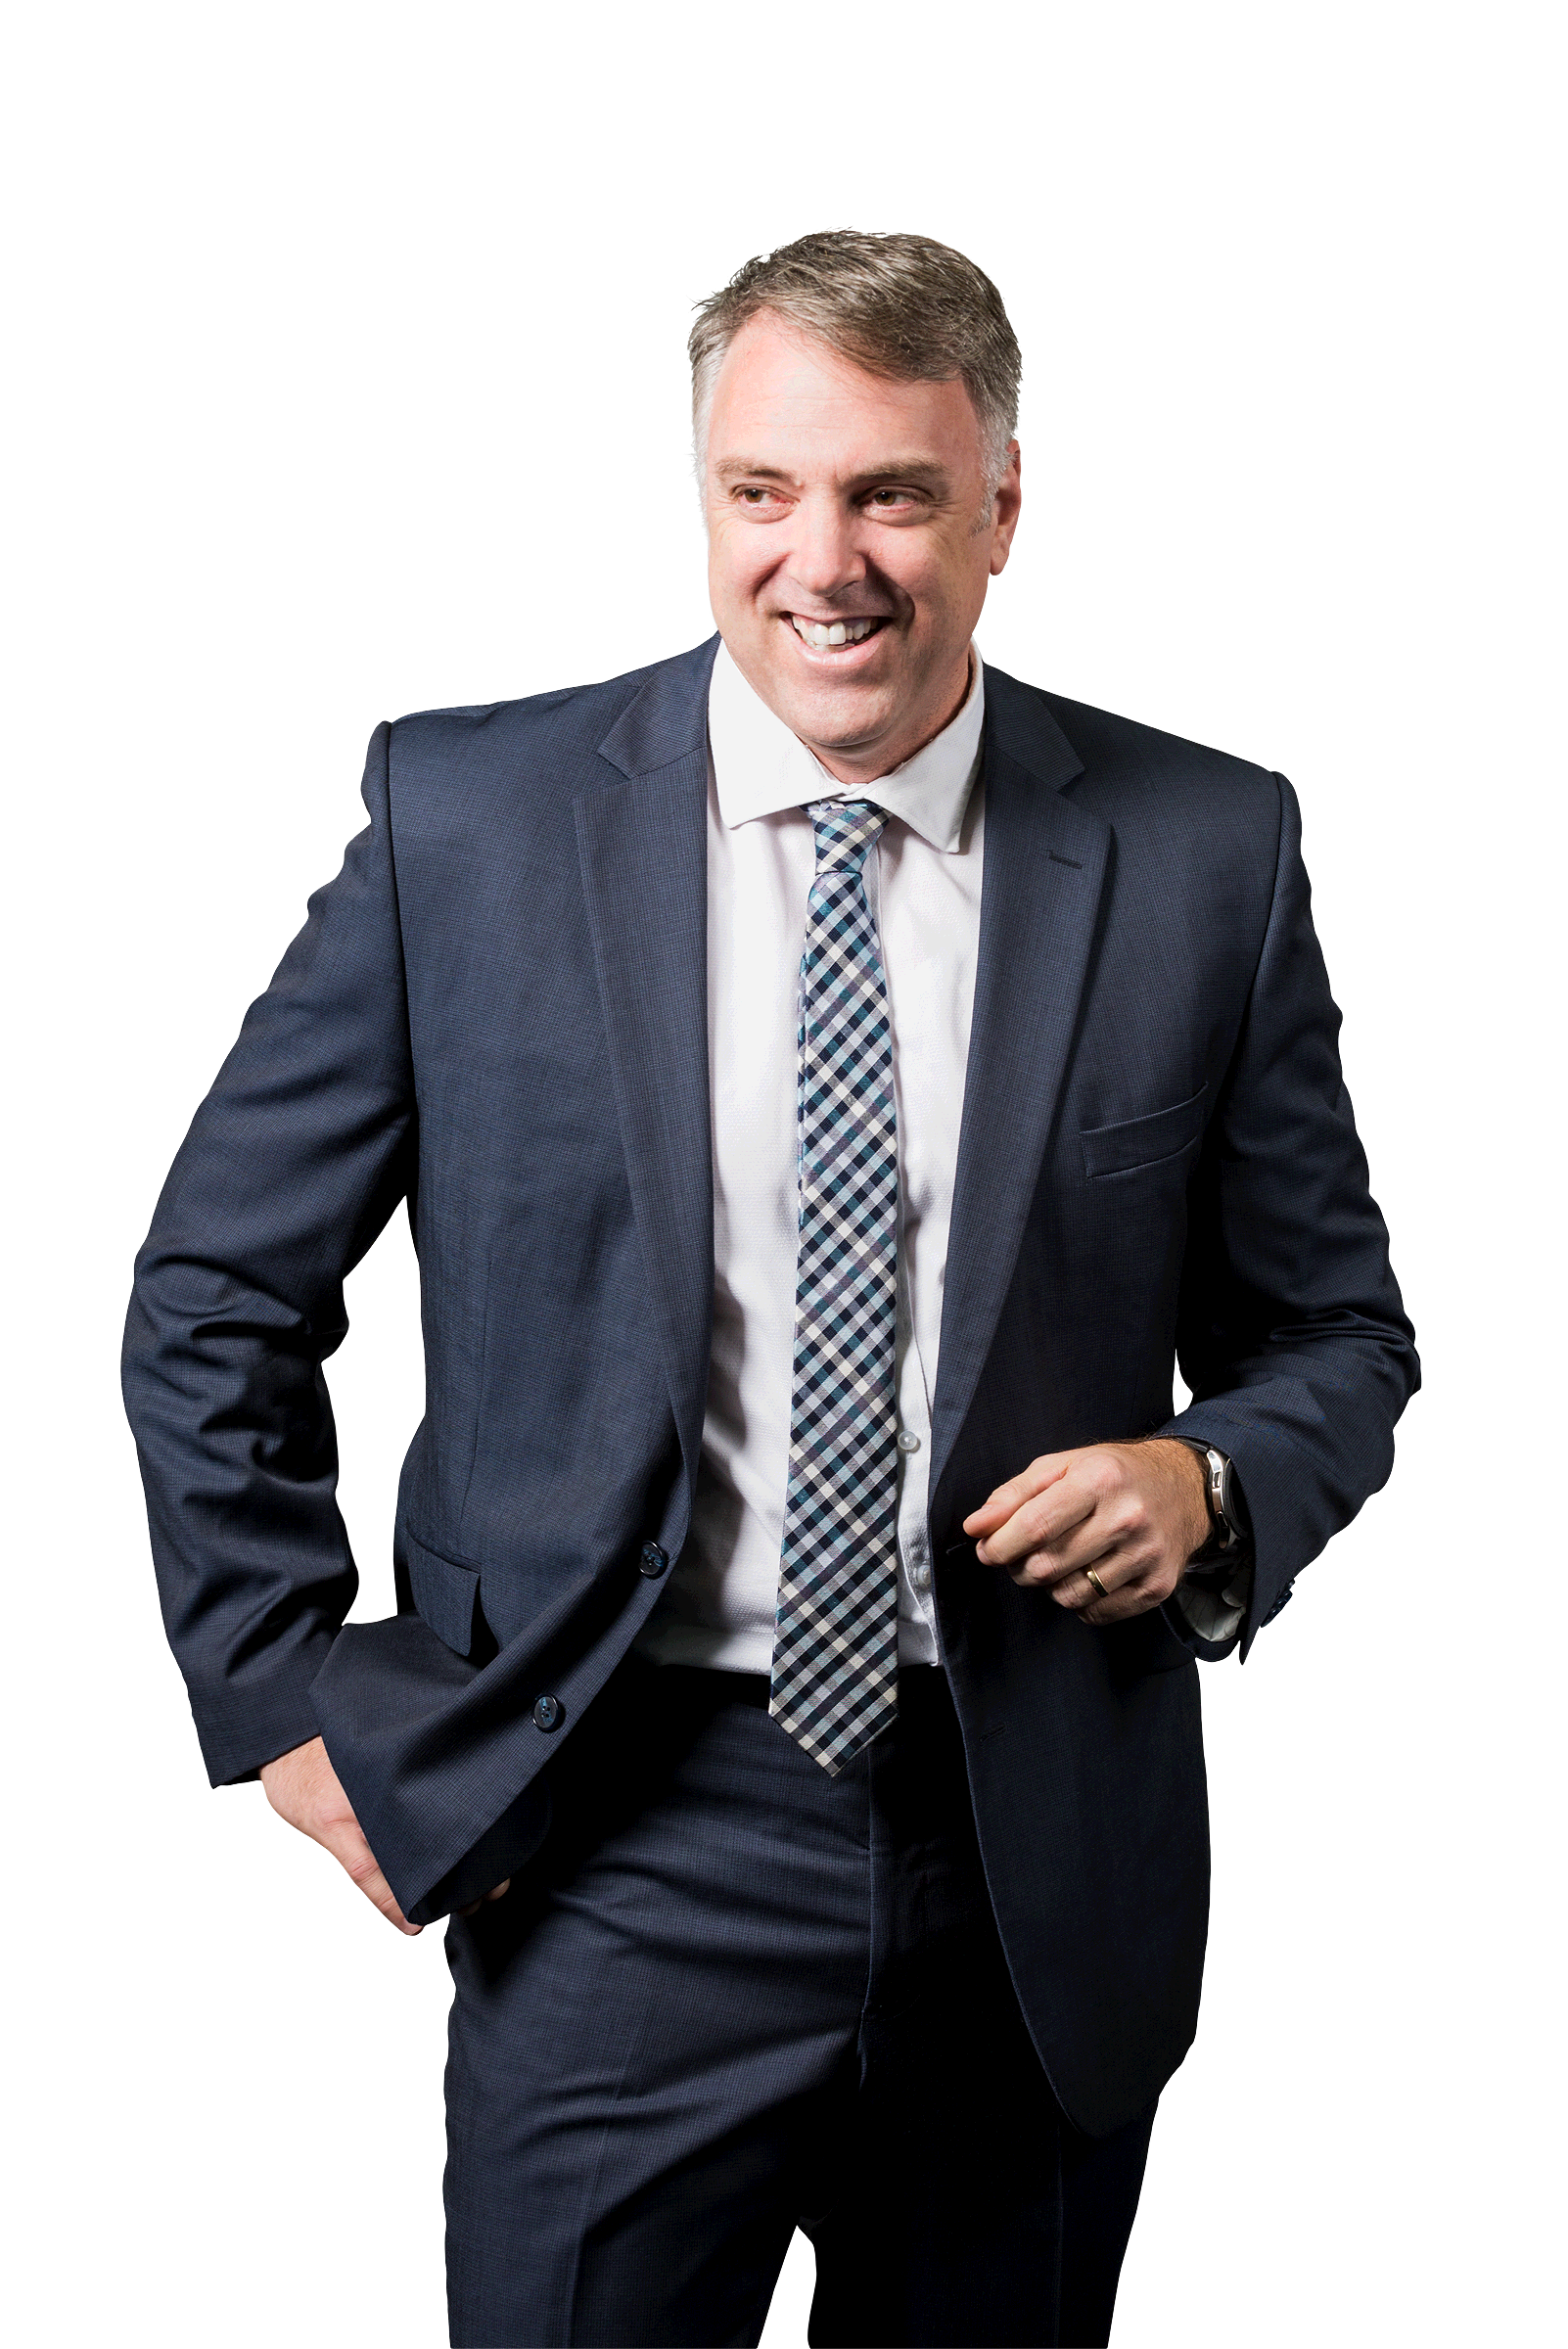 Peter O'Callaghan